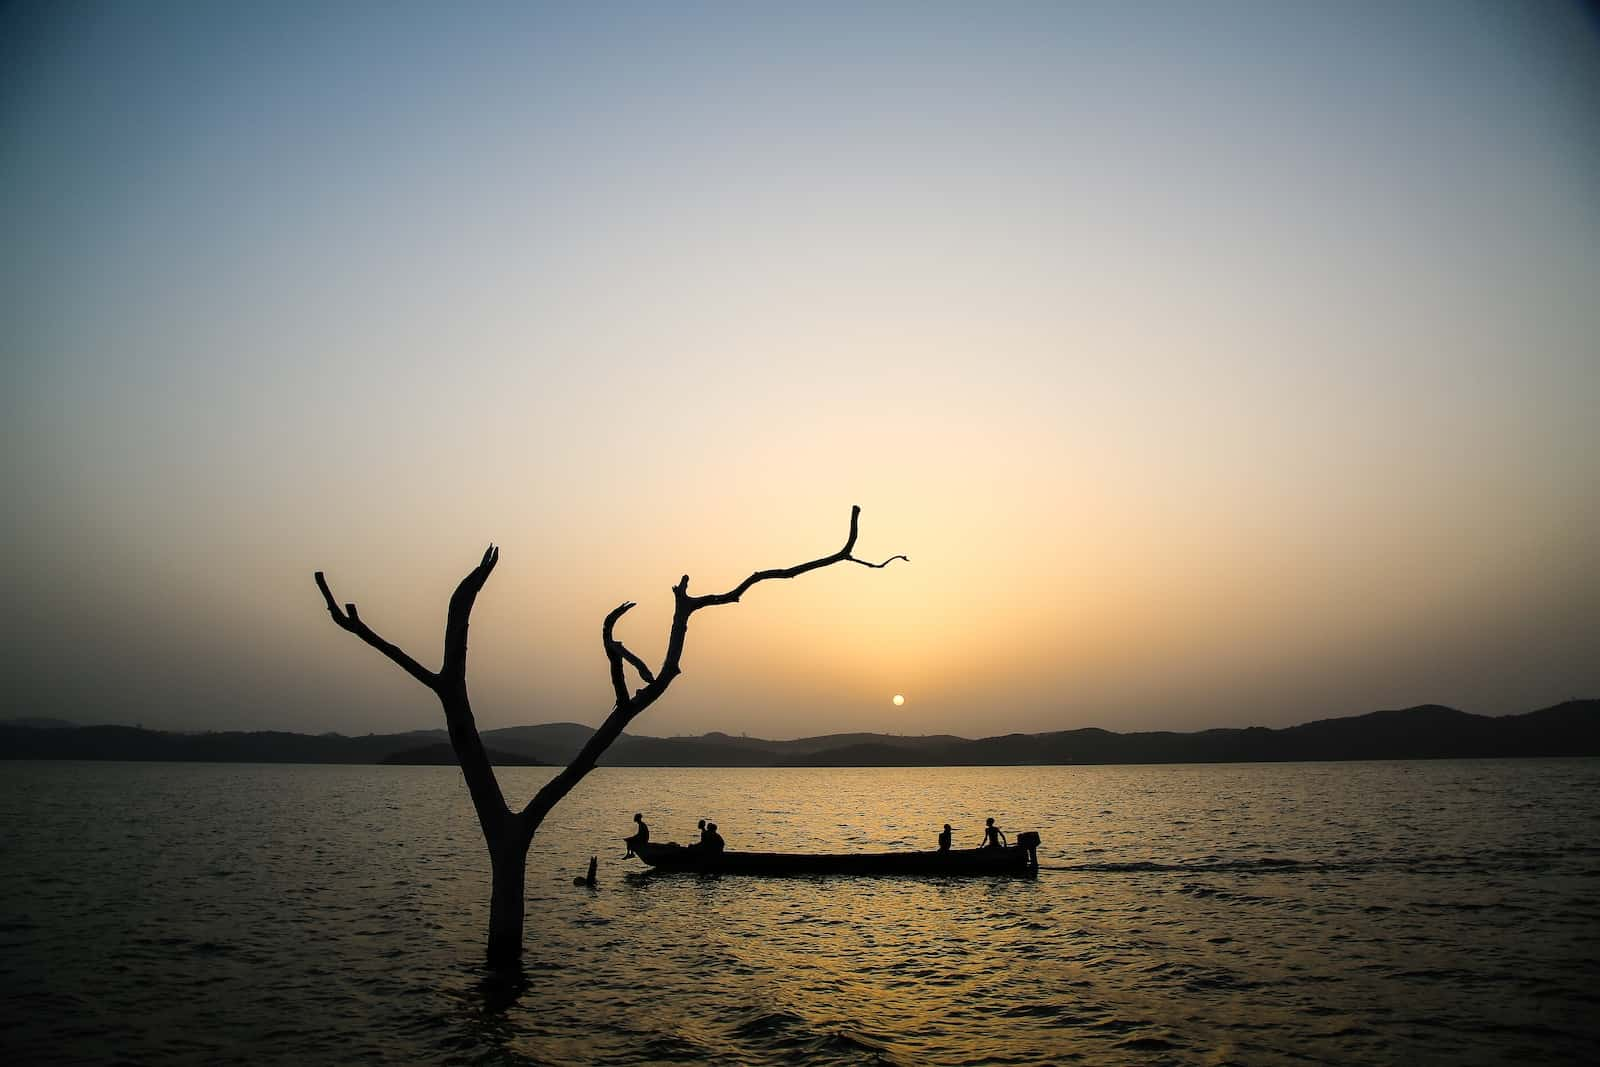 A canoe silhouetted at sunset on a lake.